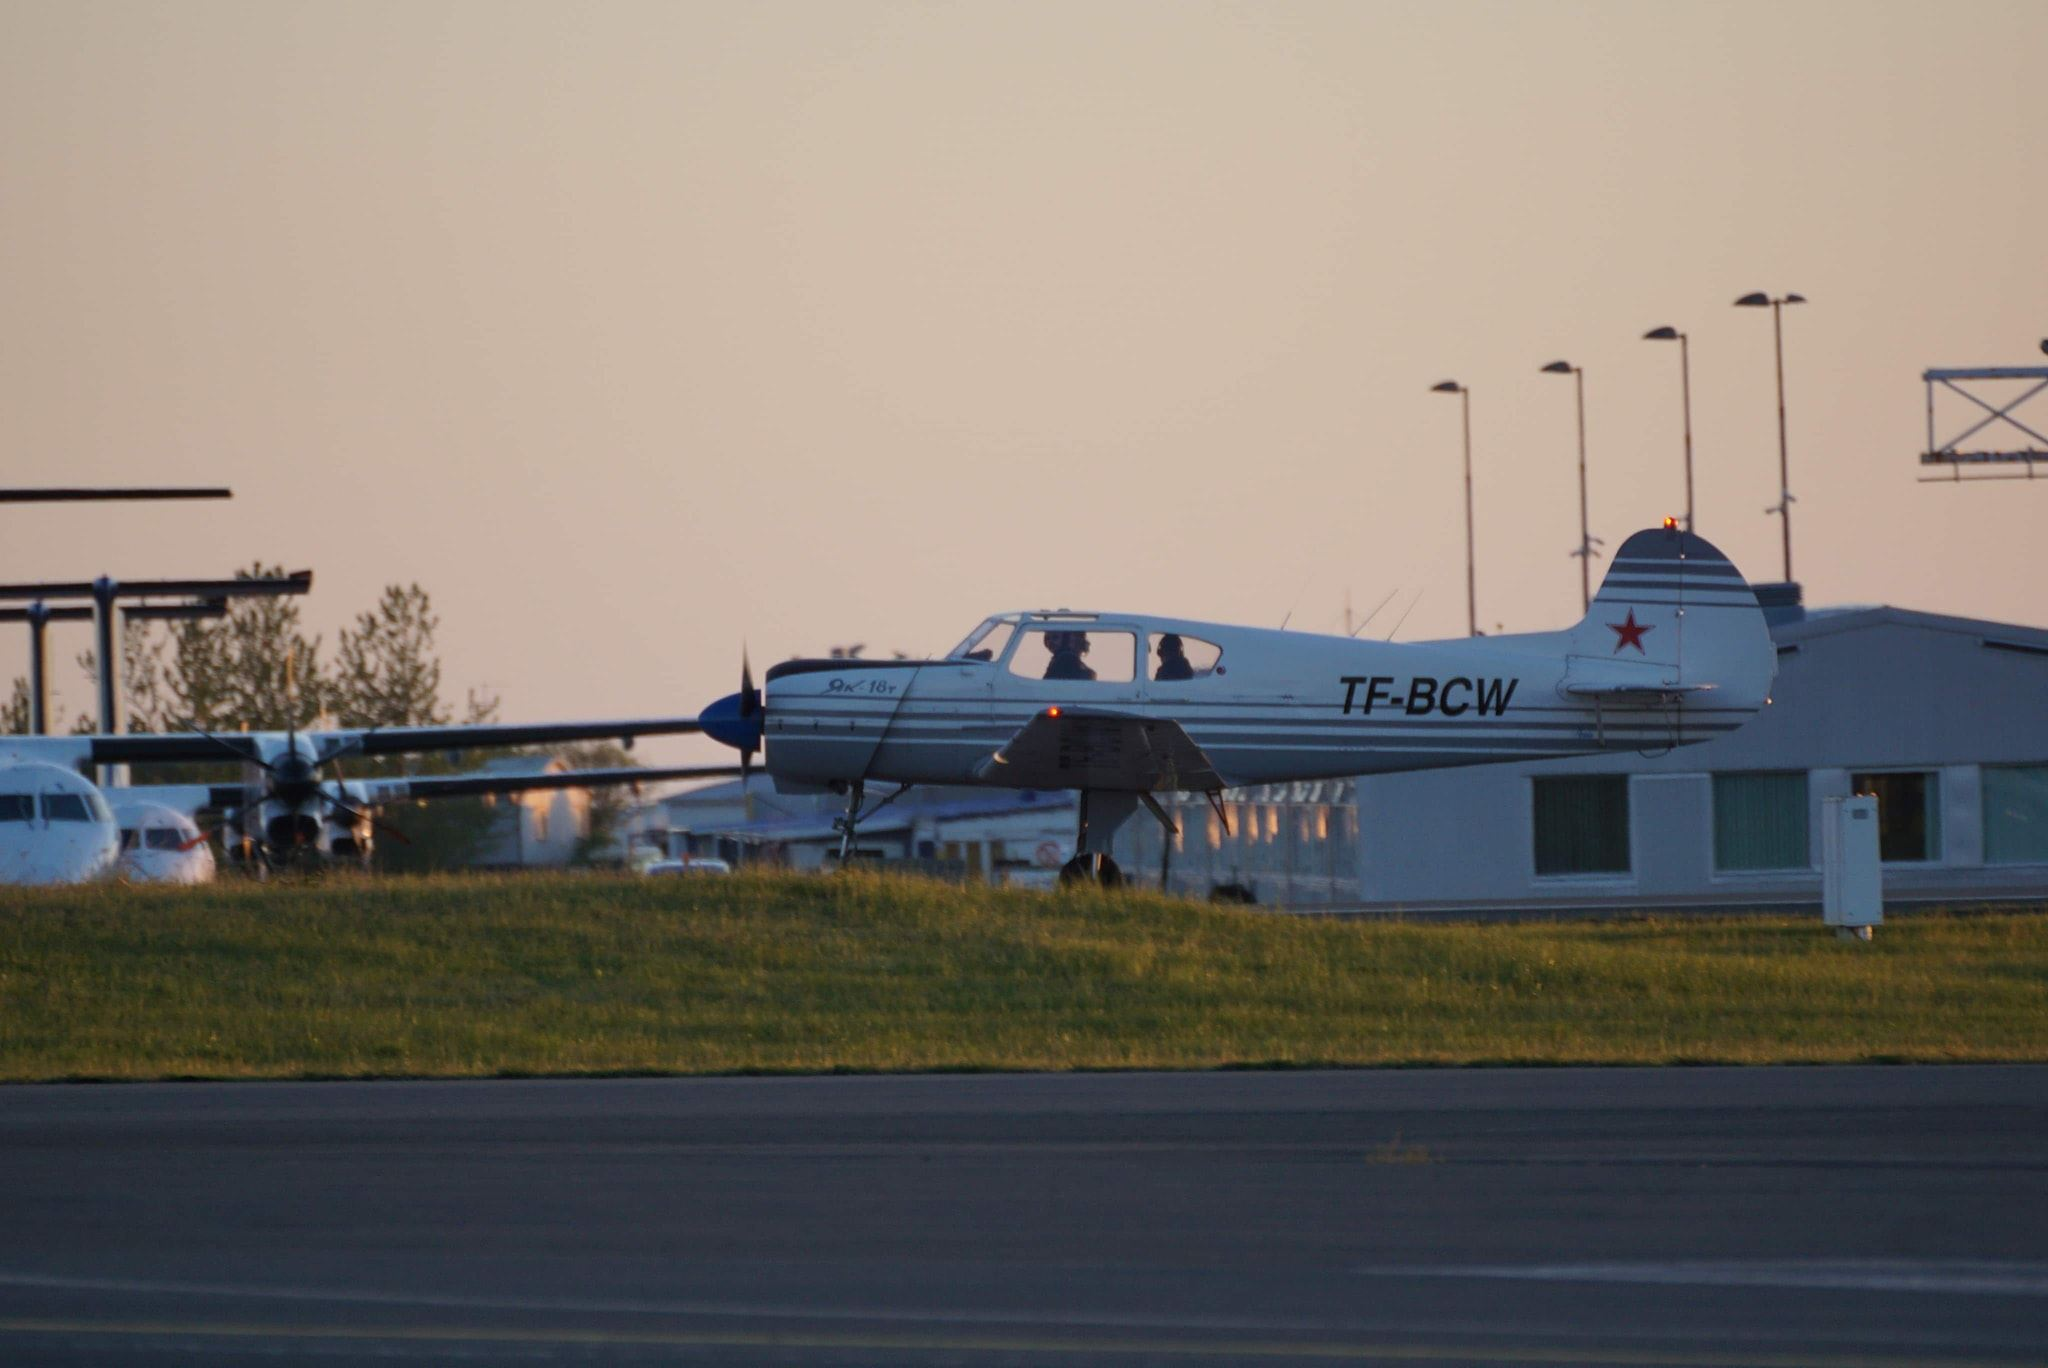 The only Icelandic Yak-18T reg. TF-BCW is taxiing after the landing in Reykjavik airport (BIRK). Pilot-in-comand is Pétur Jökull // Source: Markus Fürst